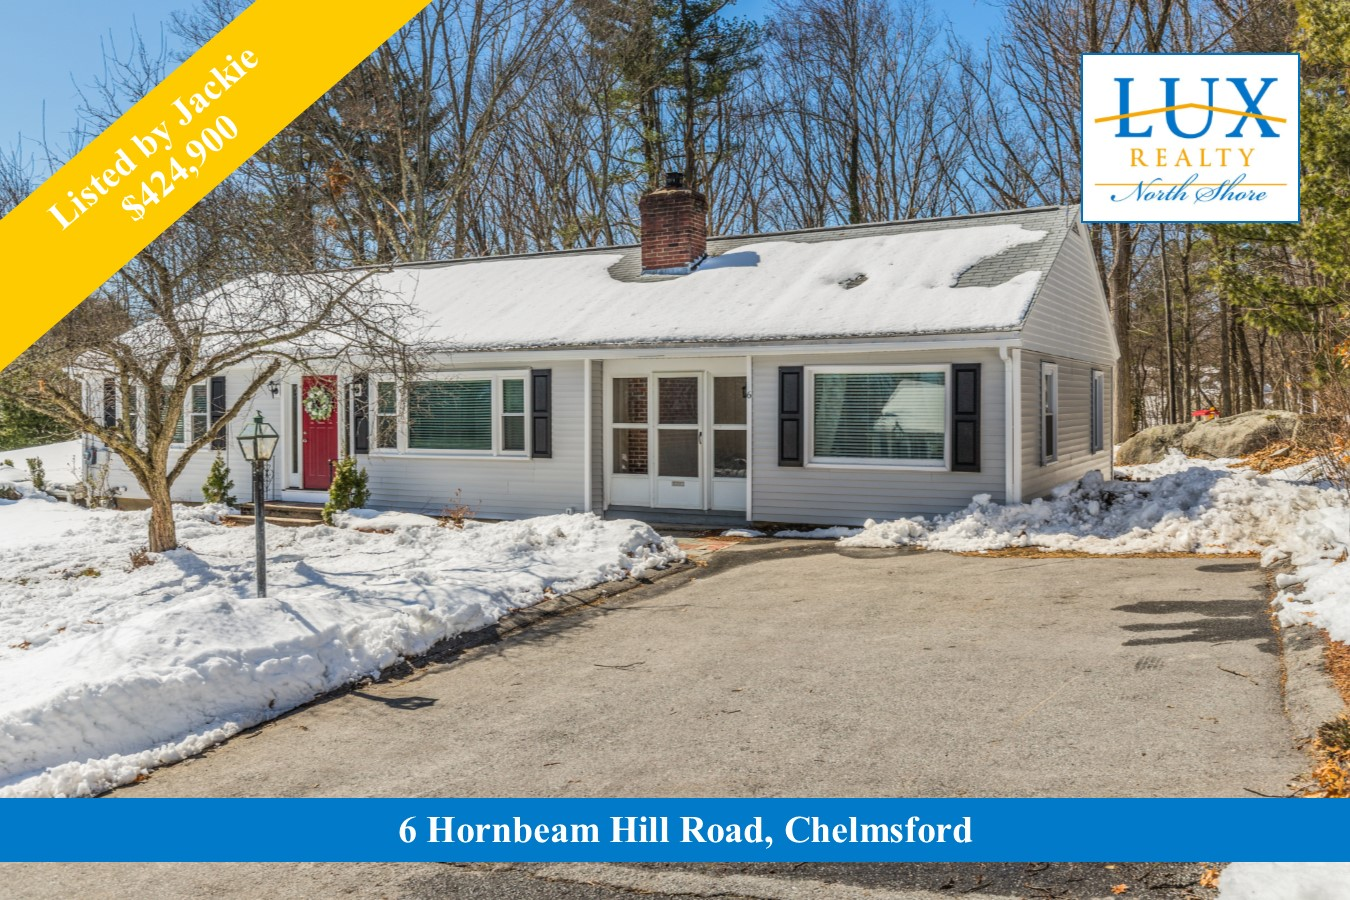 newly listed Hornbeam Hill Road Chelmsford MA